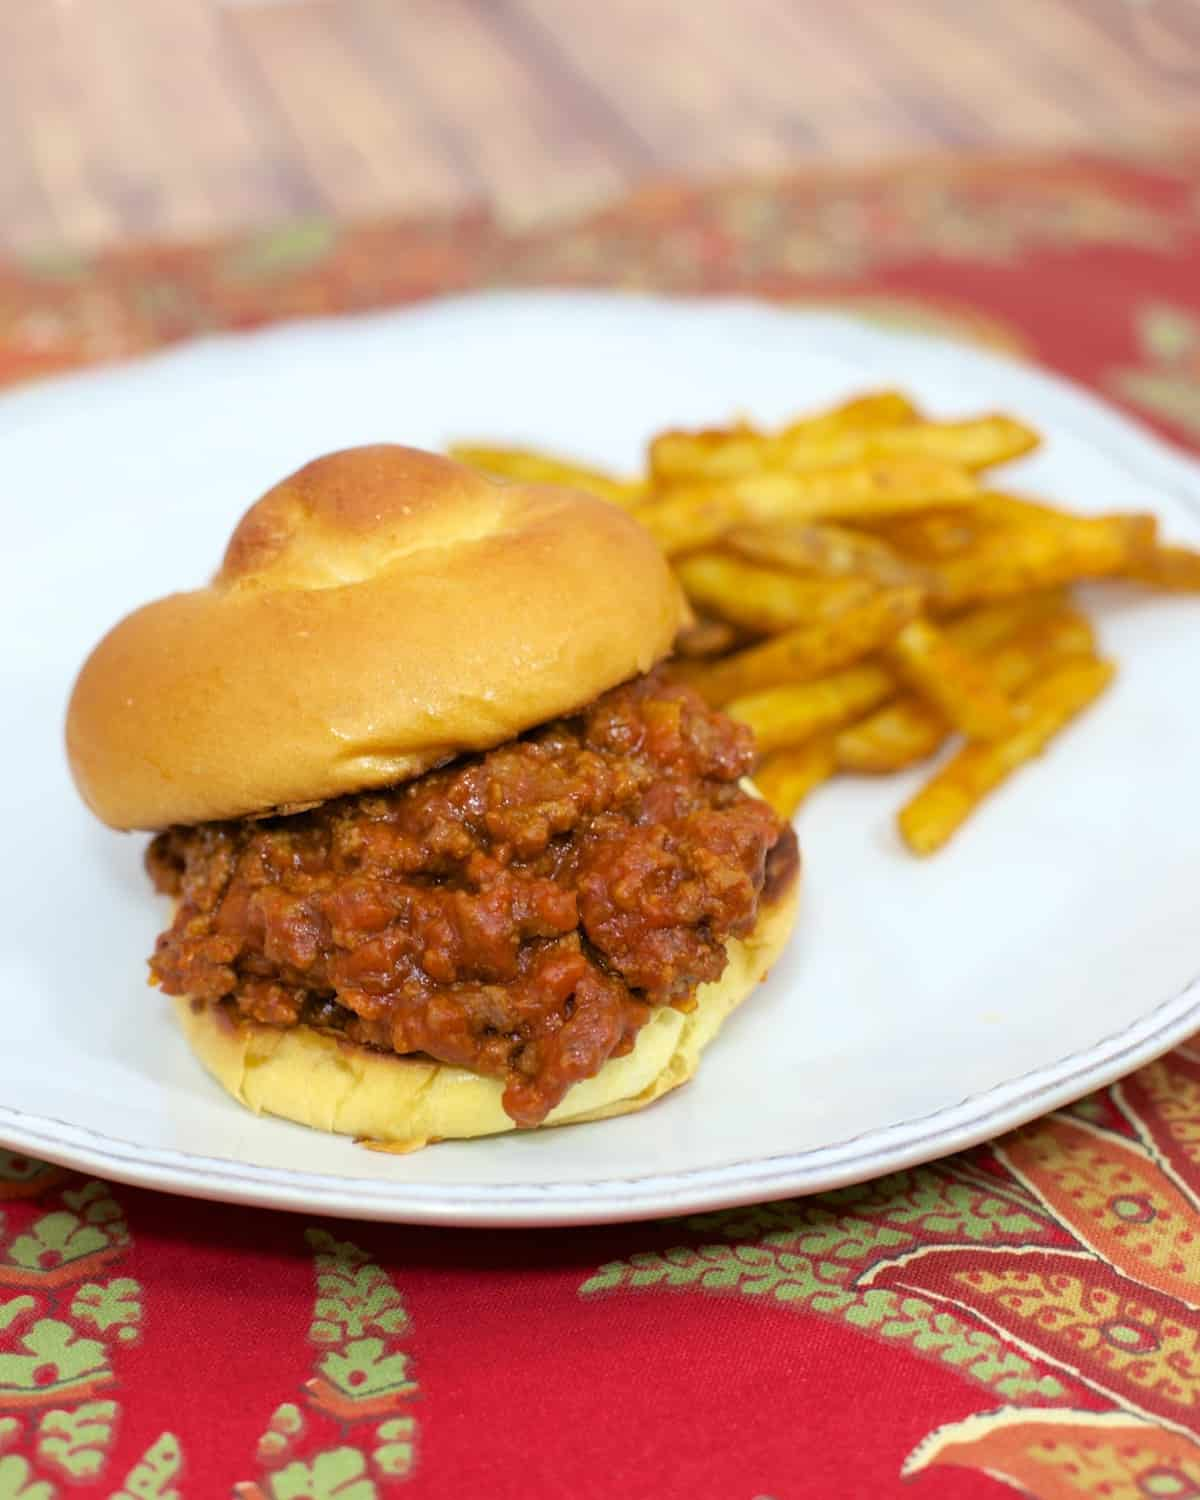 Salsa Sloppy Joes - only 5 ingredients! Ground beef, salsa, tomato soup, brown sugar and buns! Ready in about 15 minutes!! Everyone loved these sloppy joes! Quick weeknight meal!